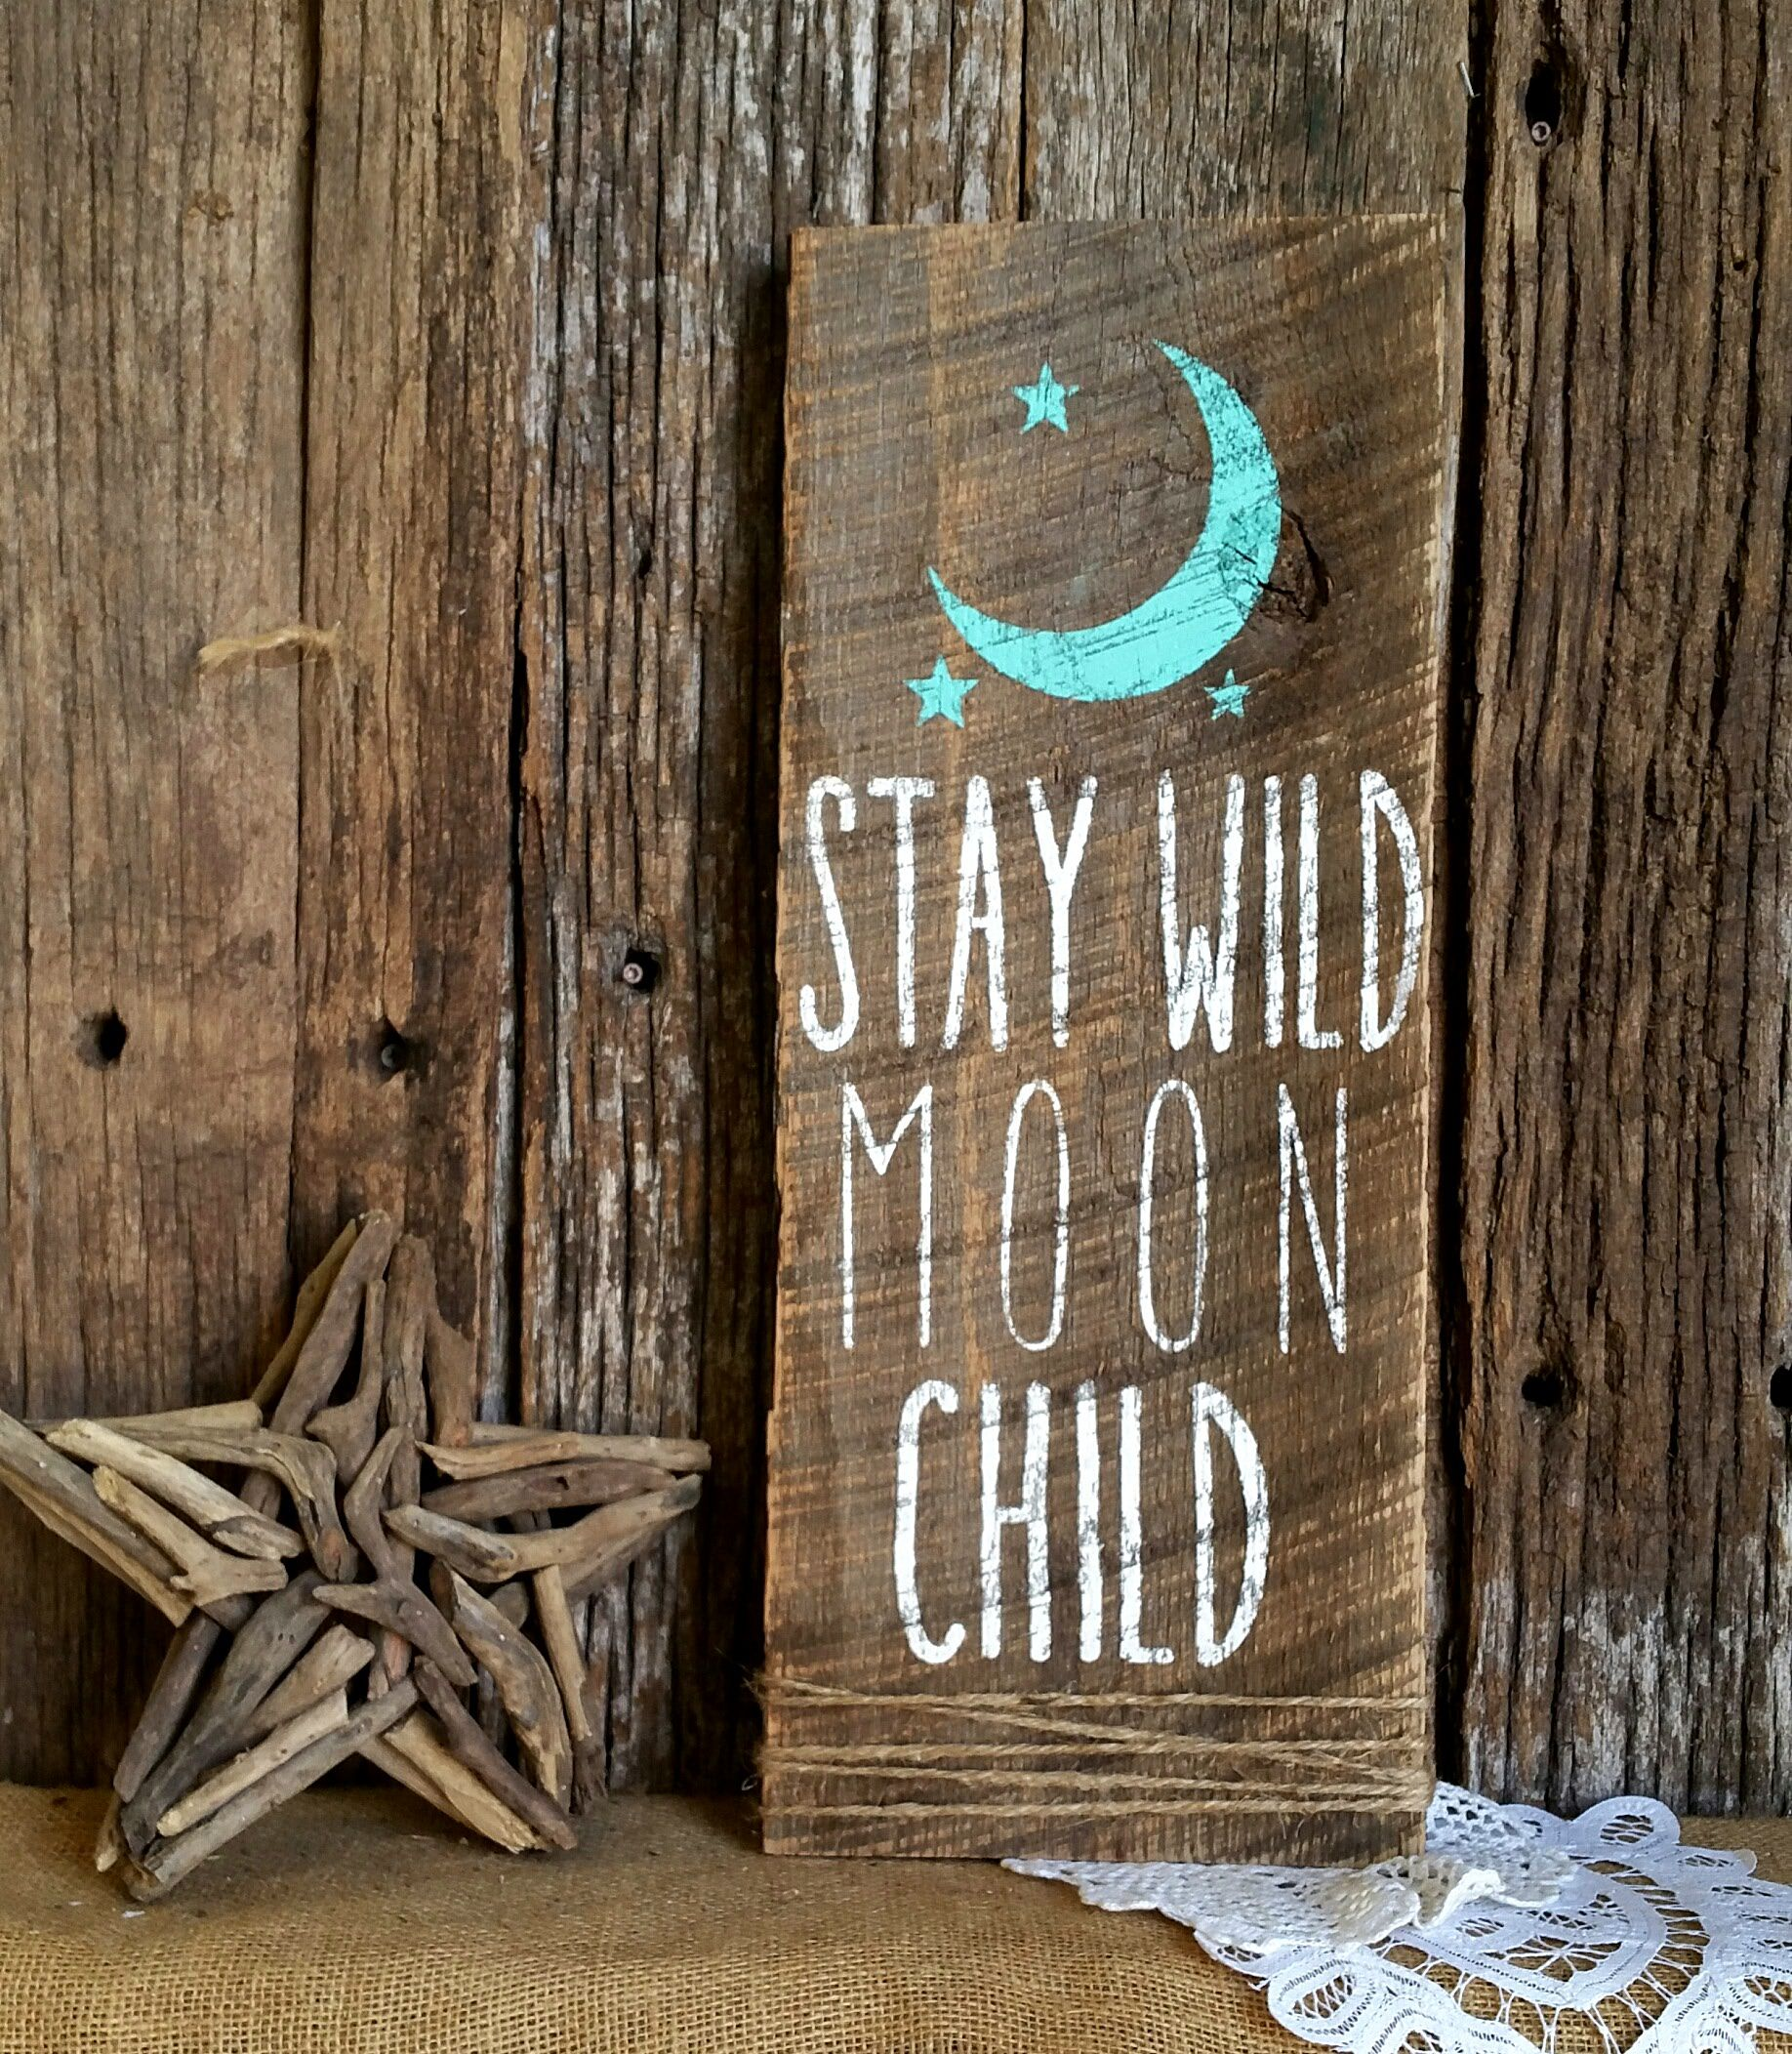 Stay wild moon child nursery decor woodland decor rustic chic home ...